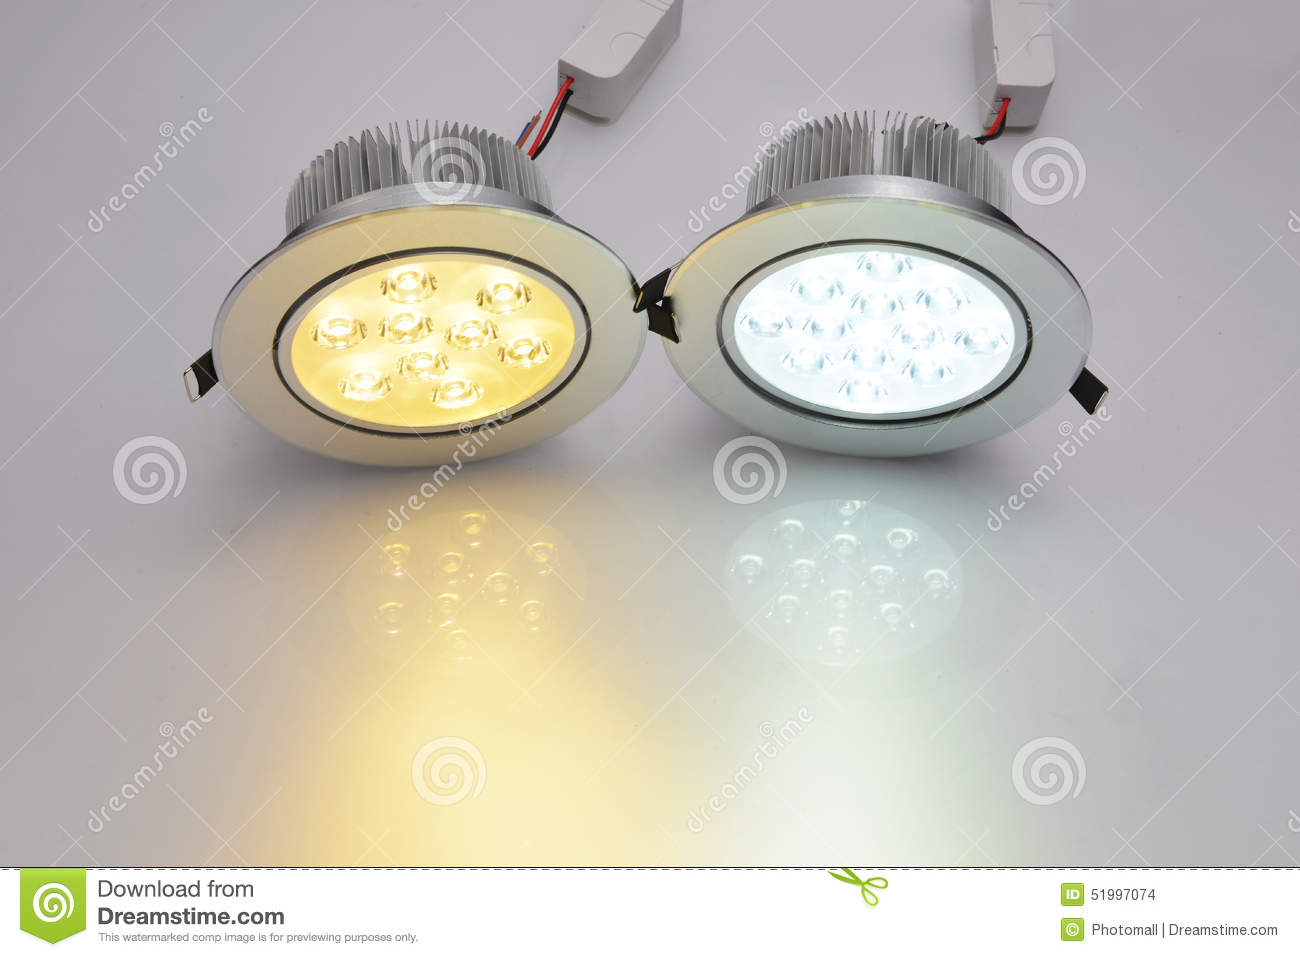 commercial led lamp